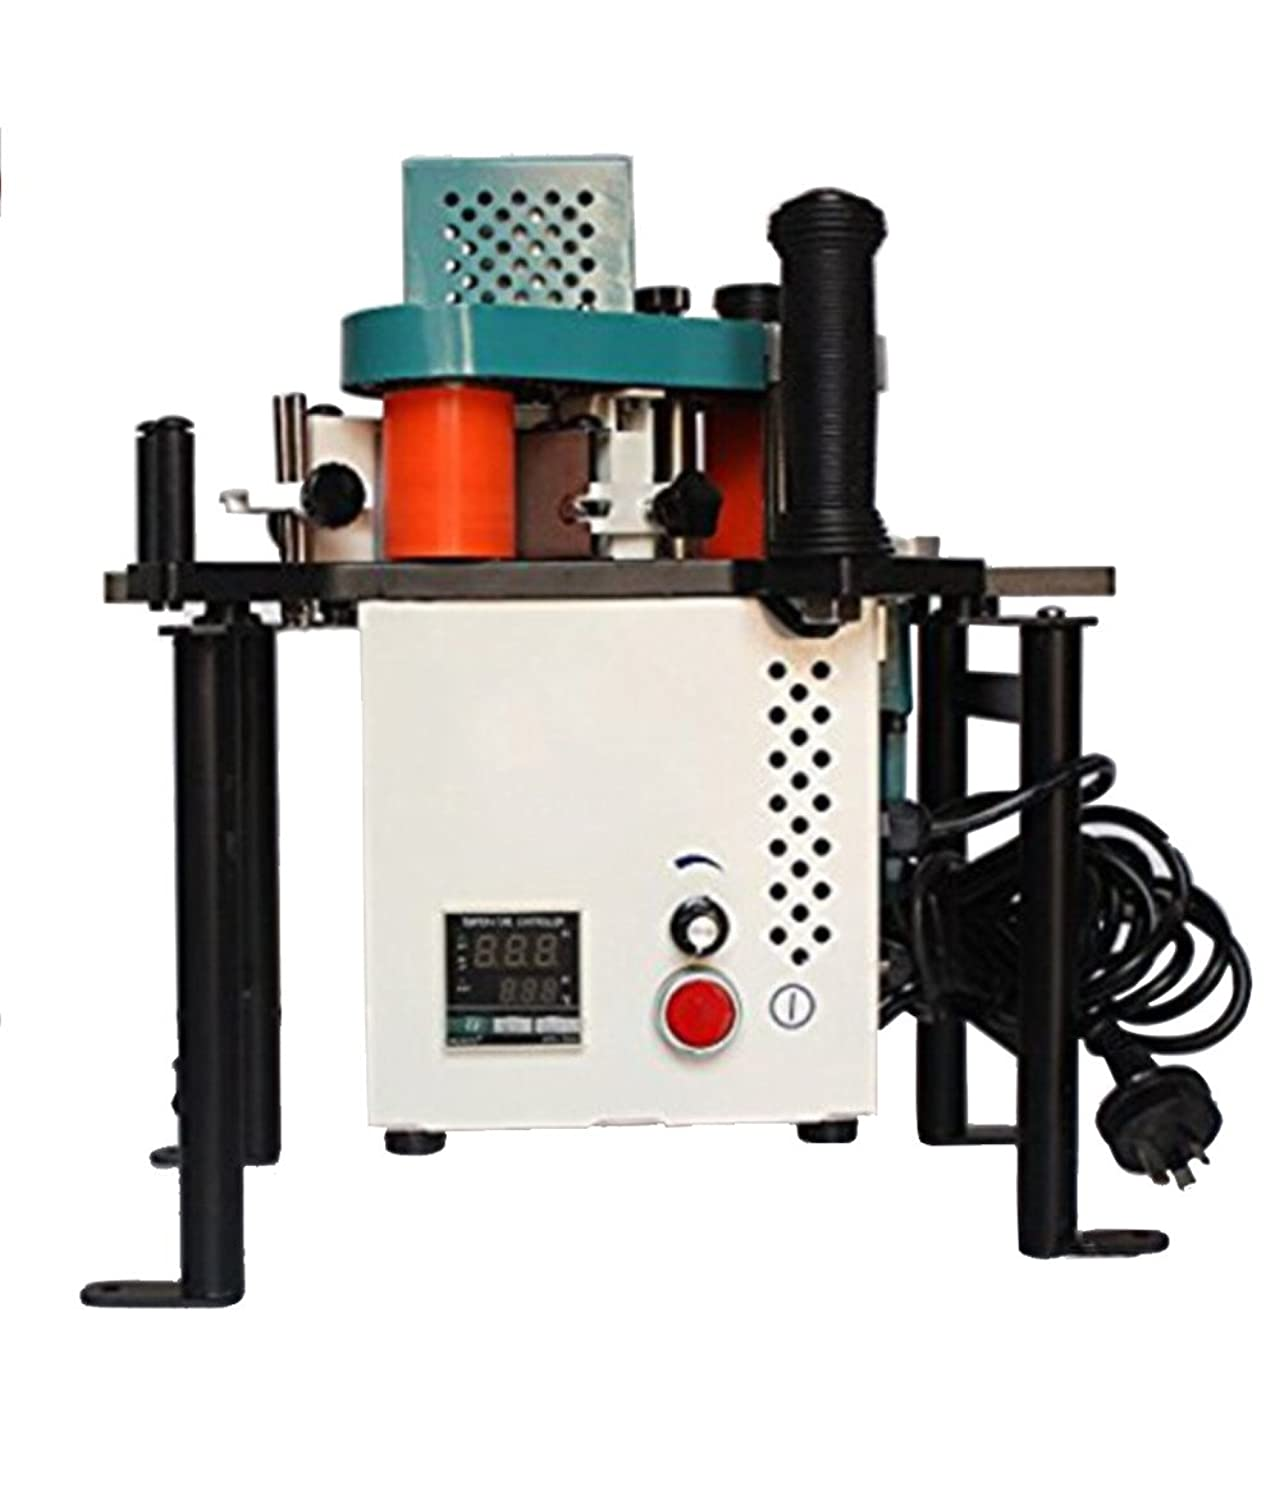 NEWTRY Woodworking Edge Bander Banding Machine 10-45mm Adjustable Temperature and Speed 0.5-5m/min (110V)